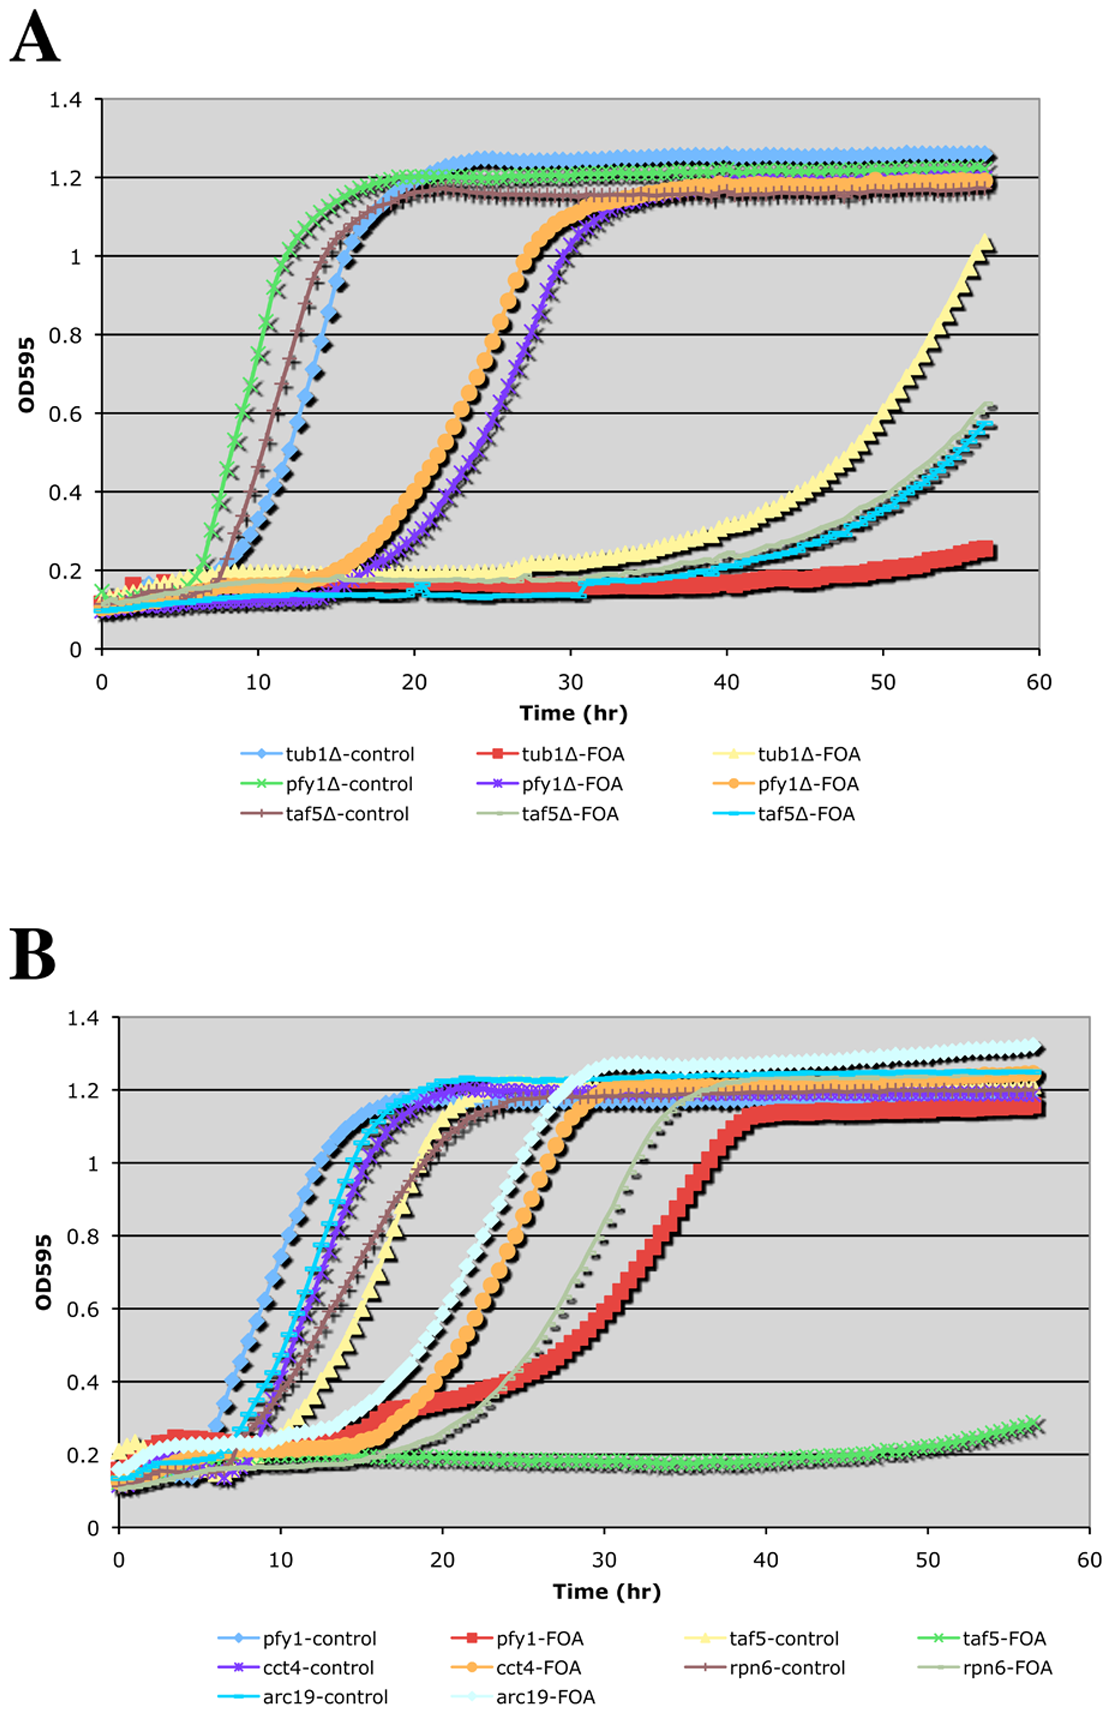 Growth curves of doubly hemizygous strains.